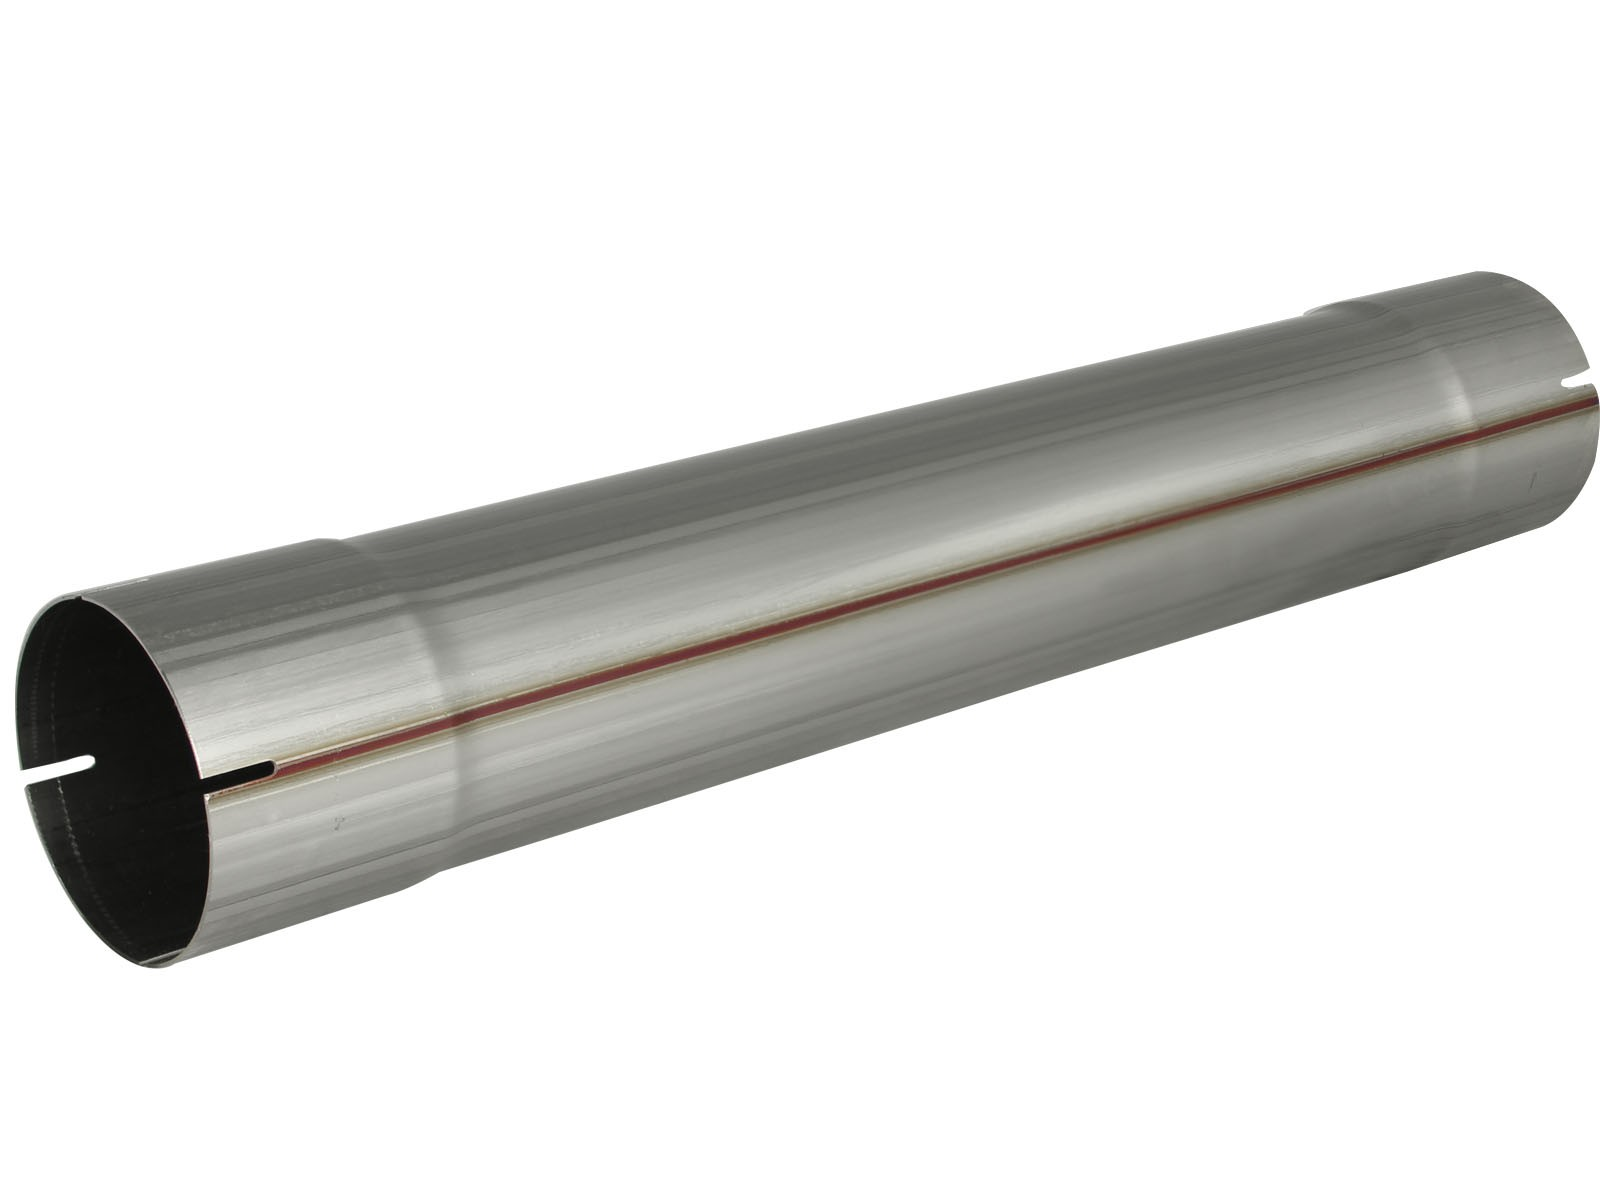 "aFe POWER 49-91041 MACH Force-Xp 5"" 409 Stainless Steel Muffler"